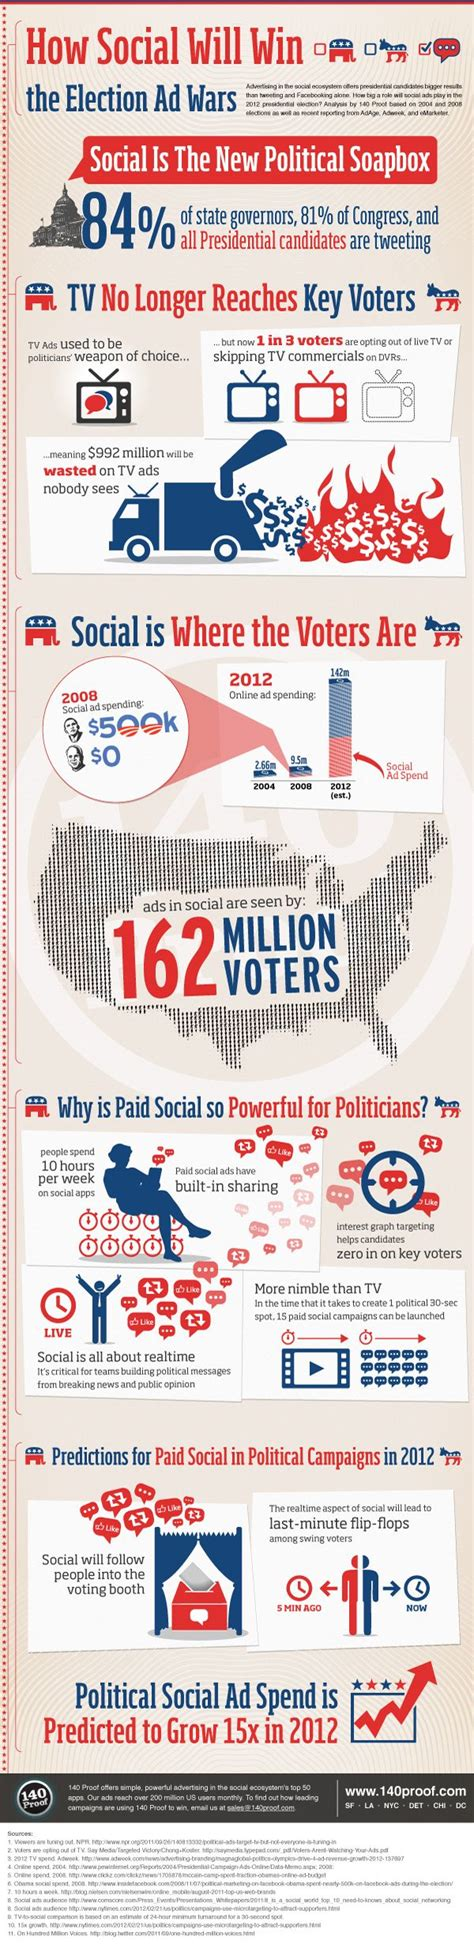 17 Best Ideas About Political On What - 17 best ideas about political caign on